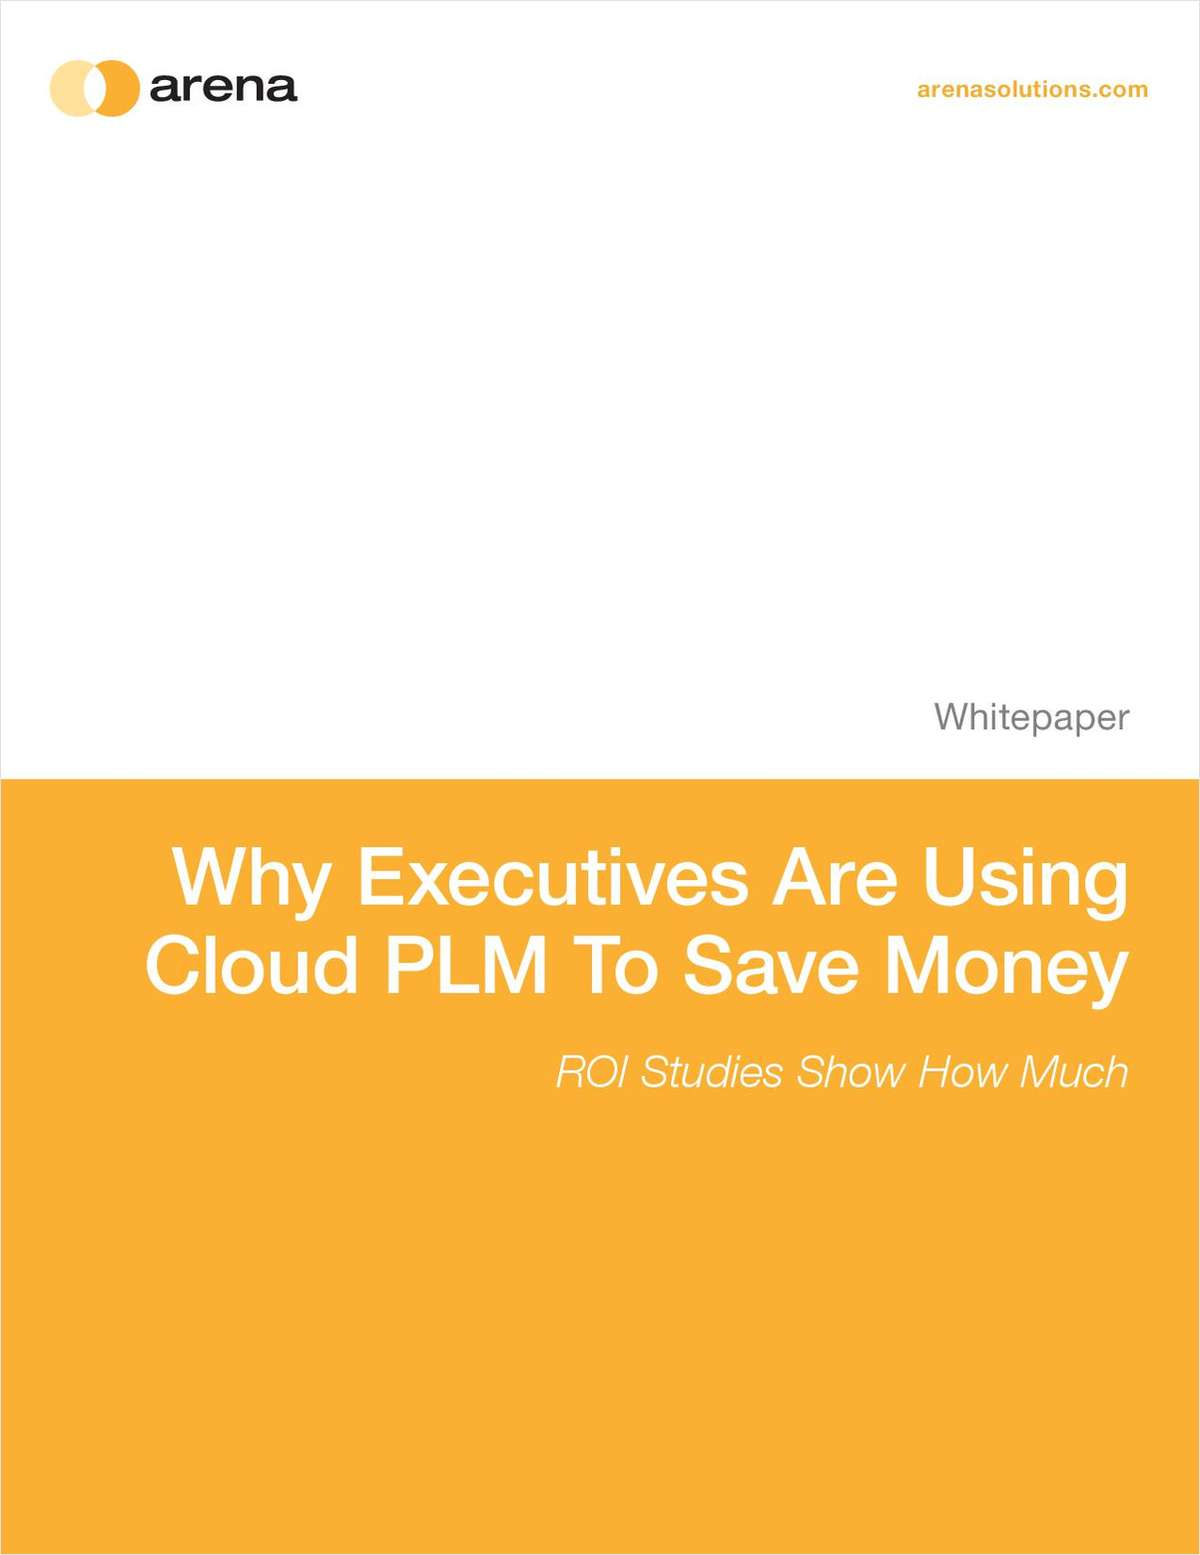 Why Executives Are Using Cloud PLM To Save Money